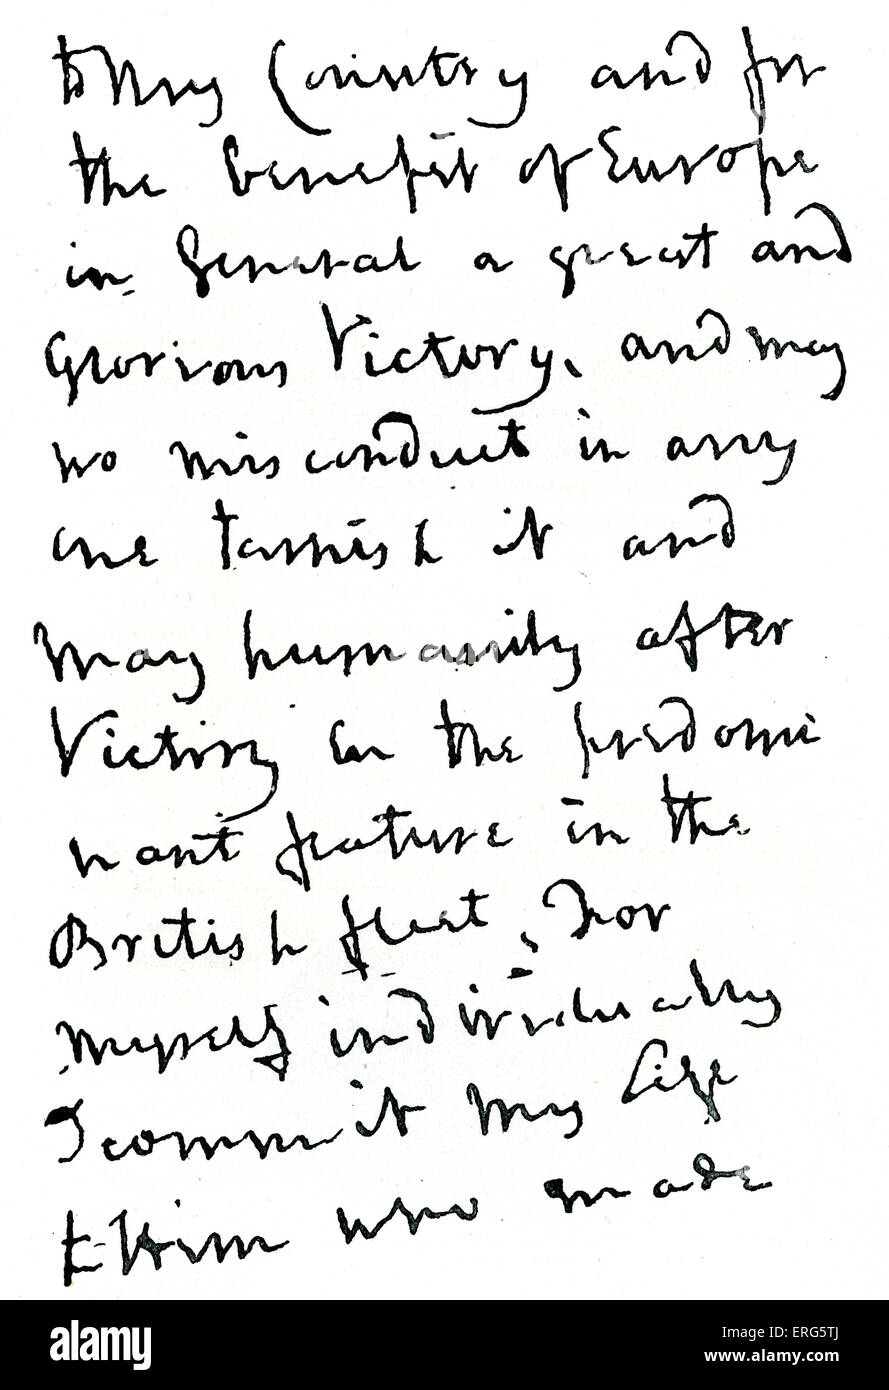 Horatio Nelson's letter, 1805. Part of letter written before the Battle of Trafalgar, during which Nelson was - Stock Image